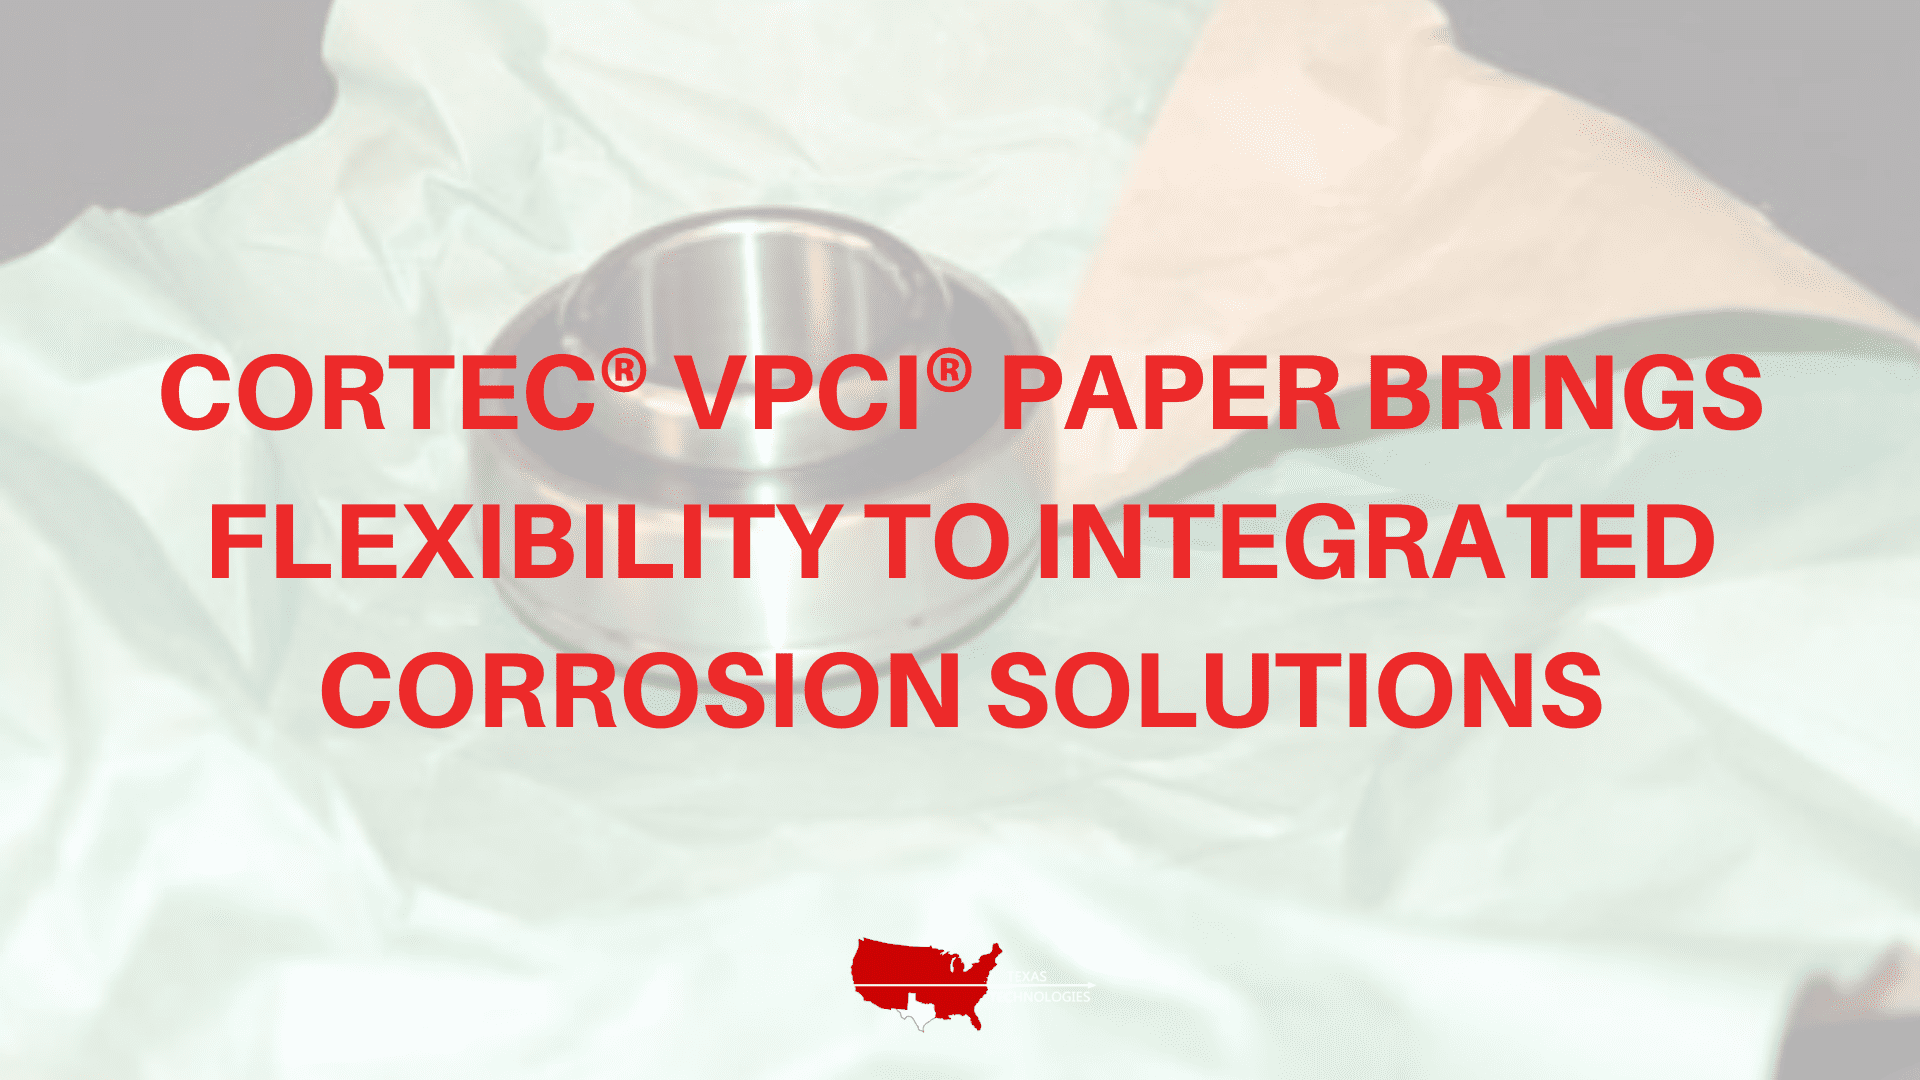 VpCI® Paper Brings Flexibility to Integrated Corrosion Solutions